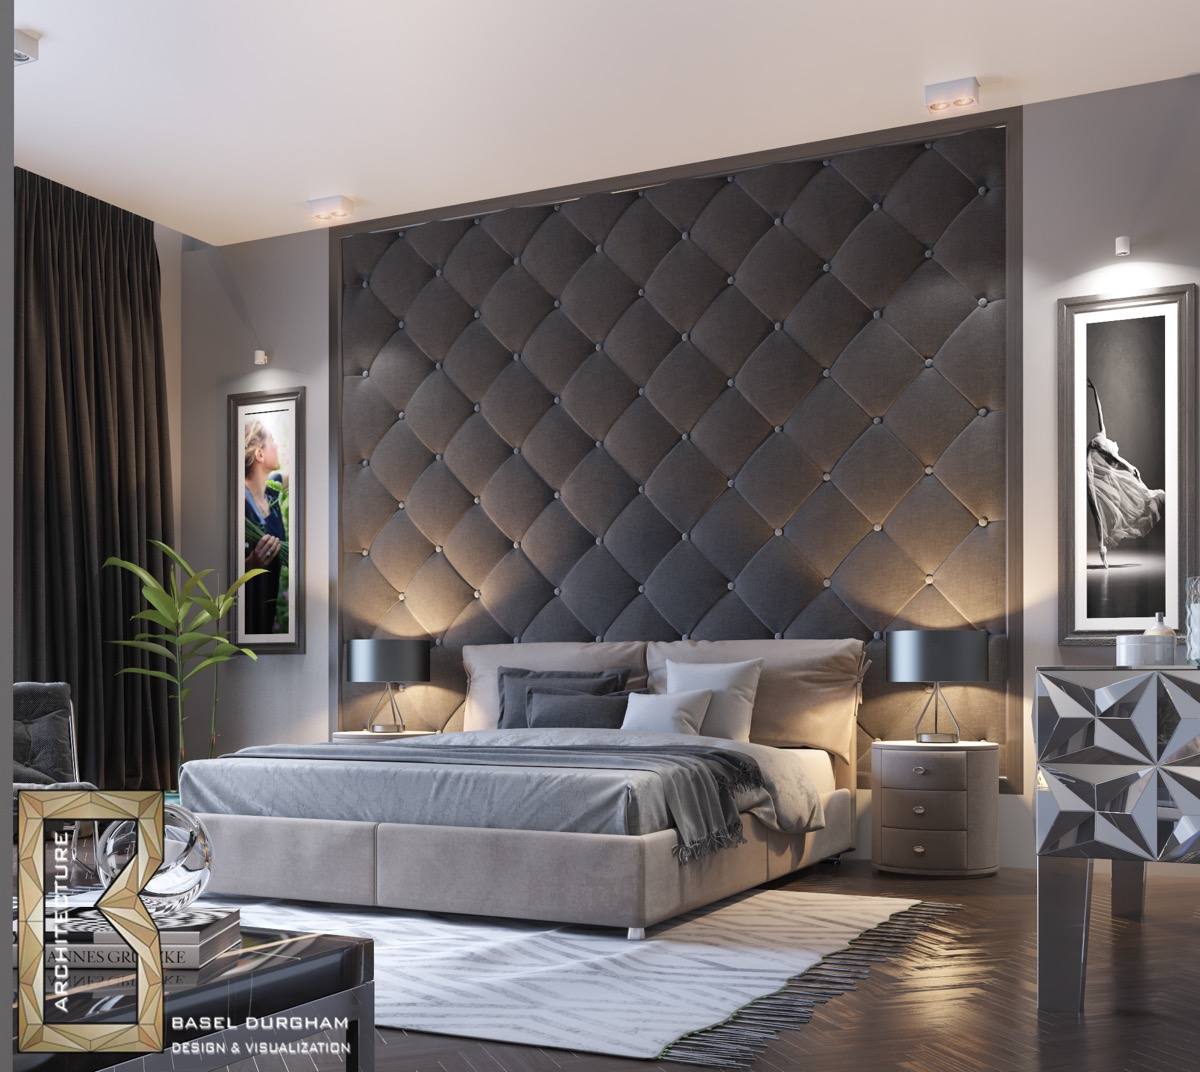 44 awesome accent wall ideas for your bedroom on accent wall ideas id=82935